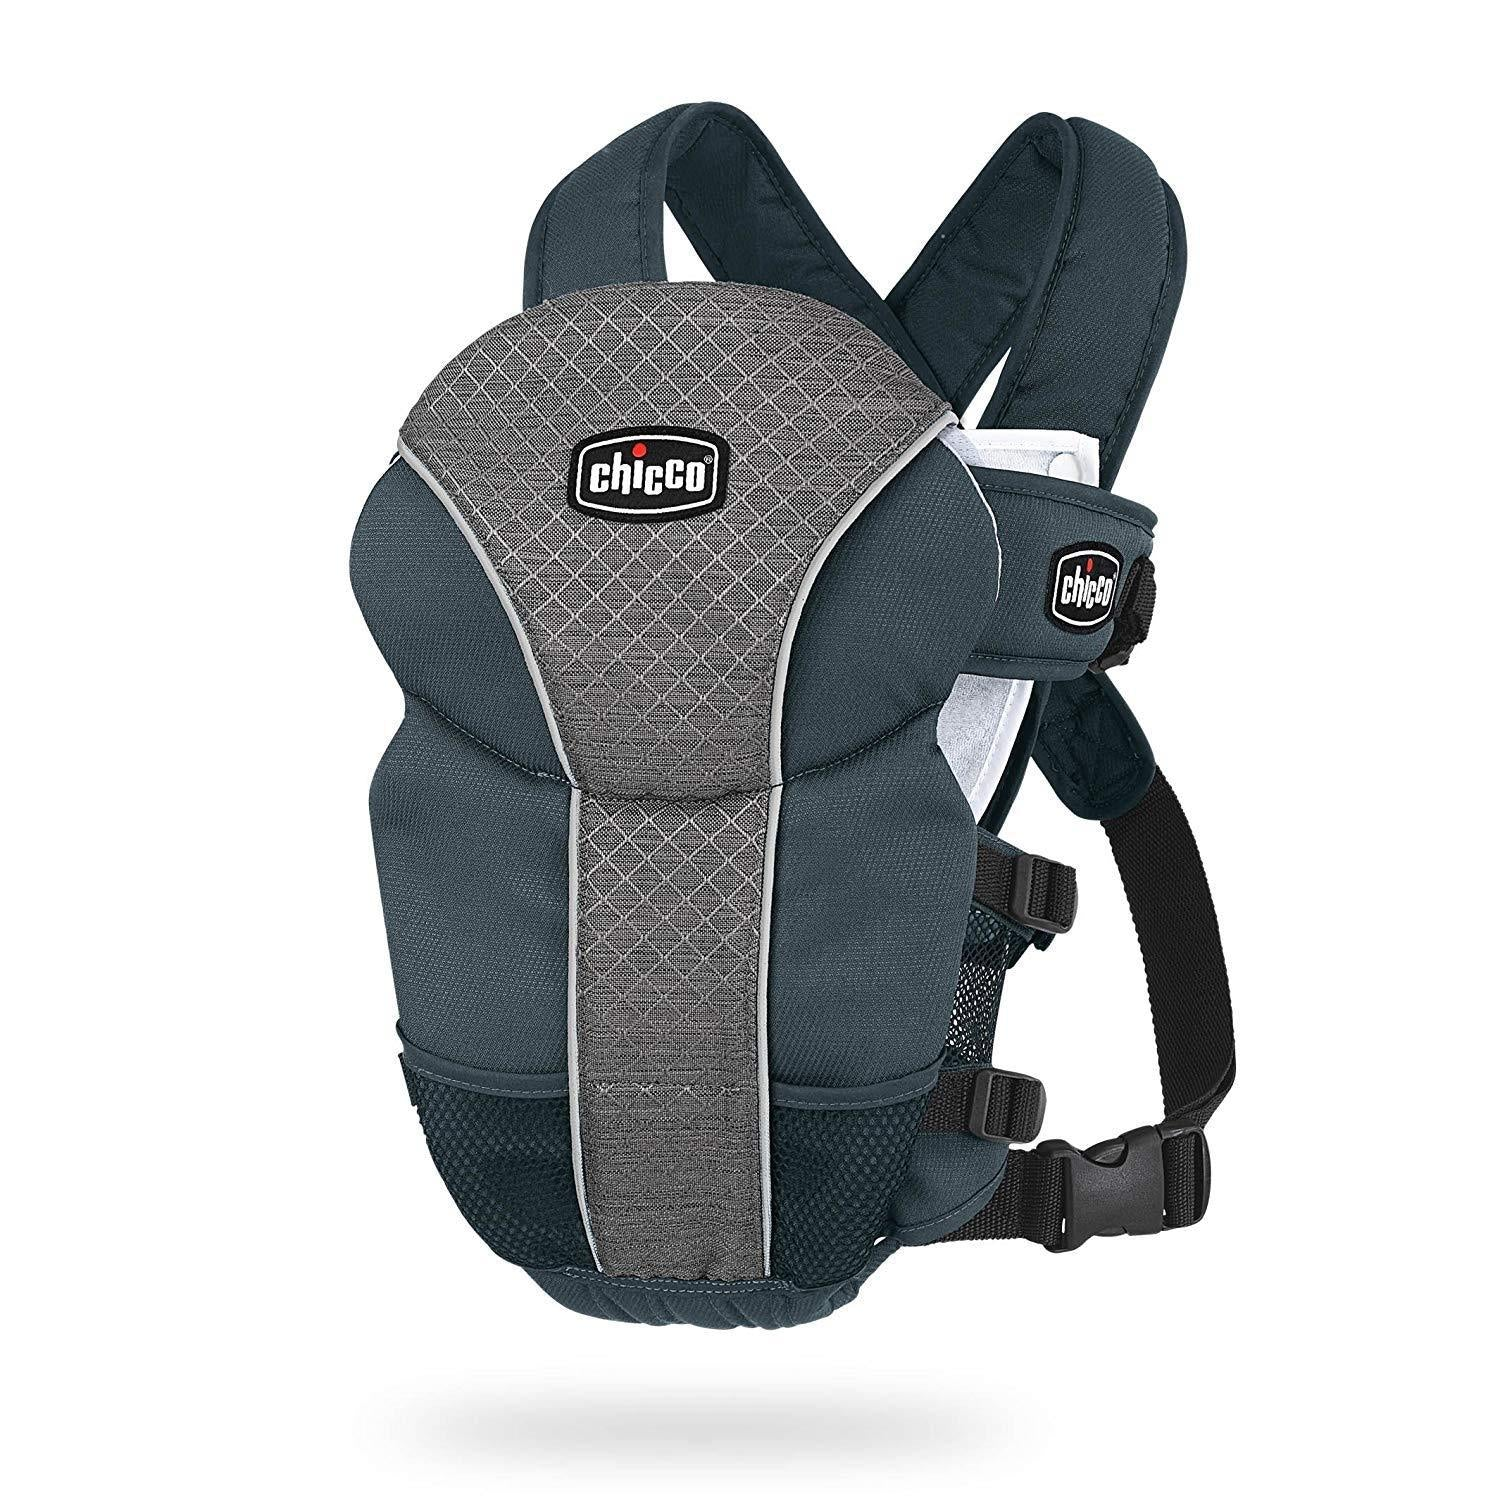 Chicco UltraSoft Infant Carrier in Poetic